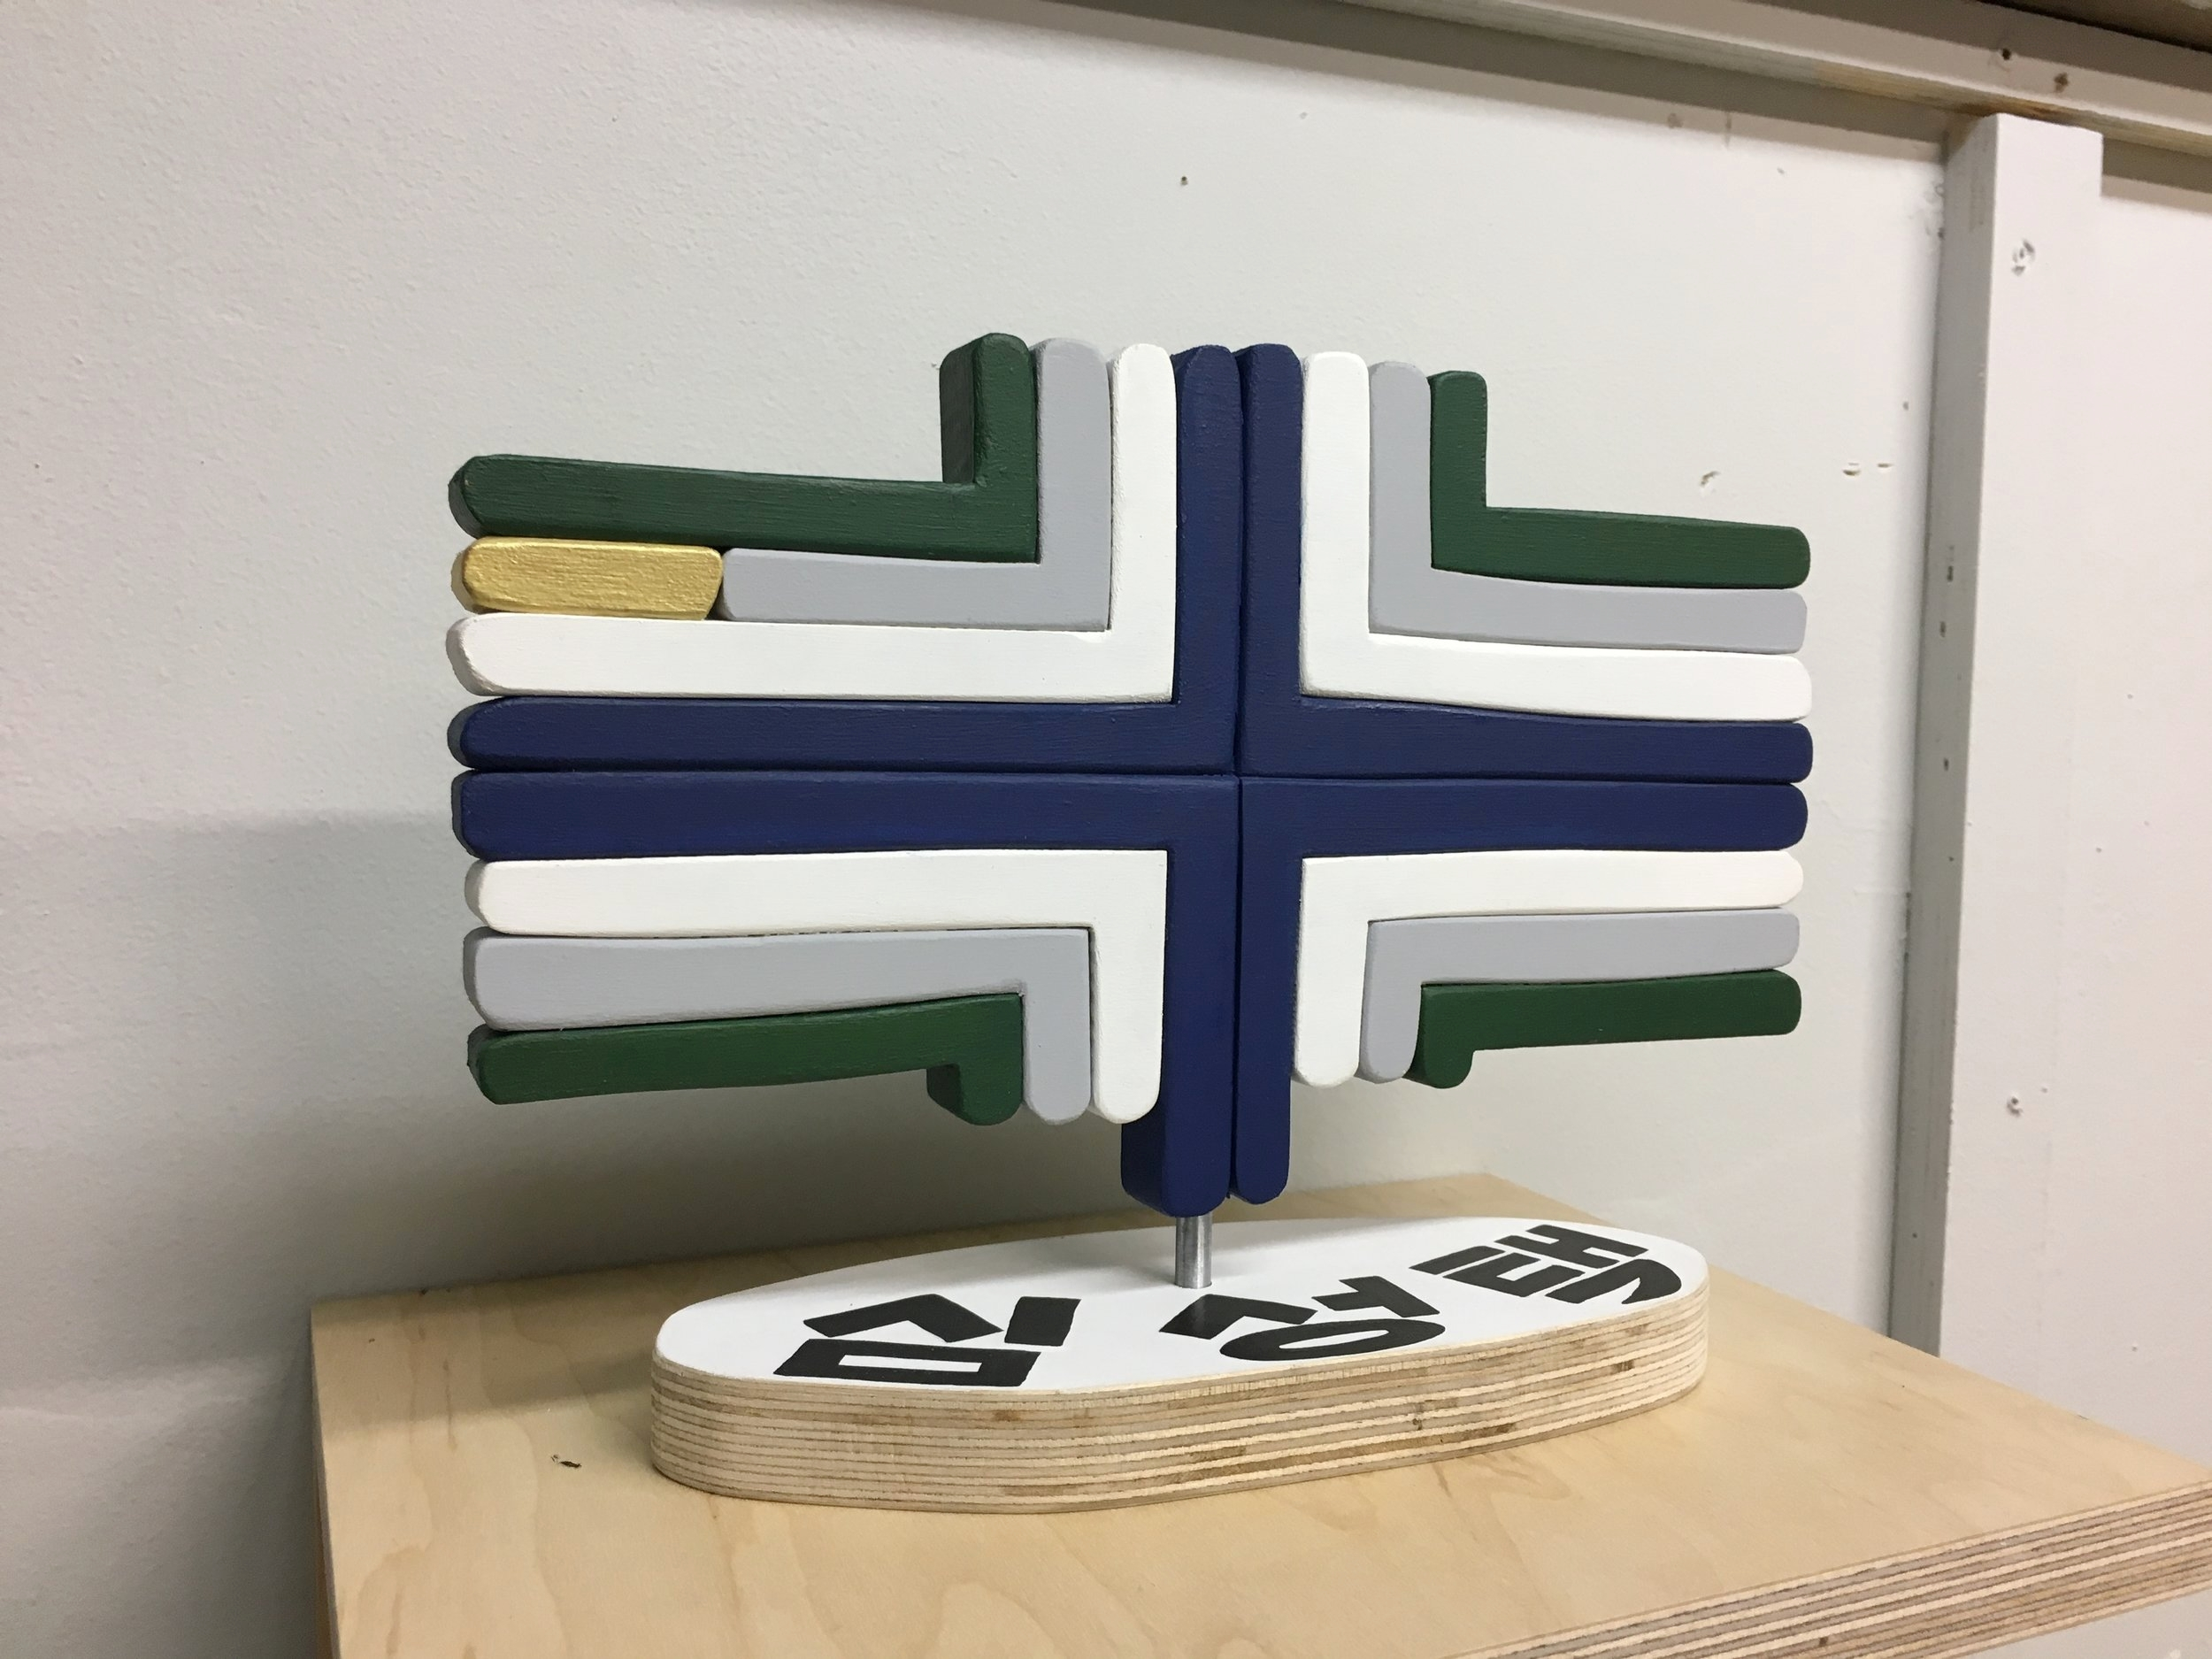 """2018, """"Peace Cross,"""" (A gift for Halmeoni), Paint and wood, text reads """"Sim Sung-Taek"""" a commemoration of my great grandfather who was an intellectual kidnapped during the Korean War. 9""""x11.5""""x3"""""""